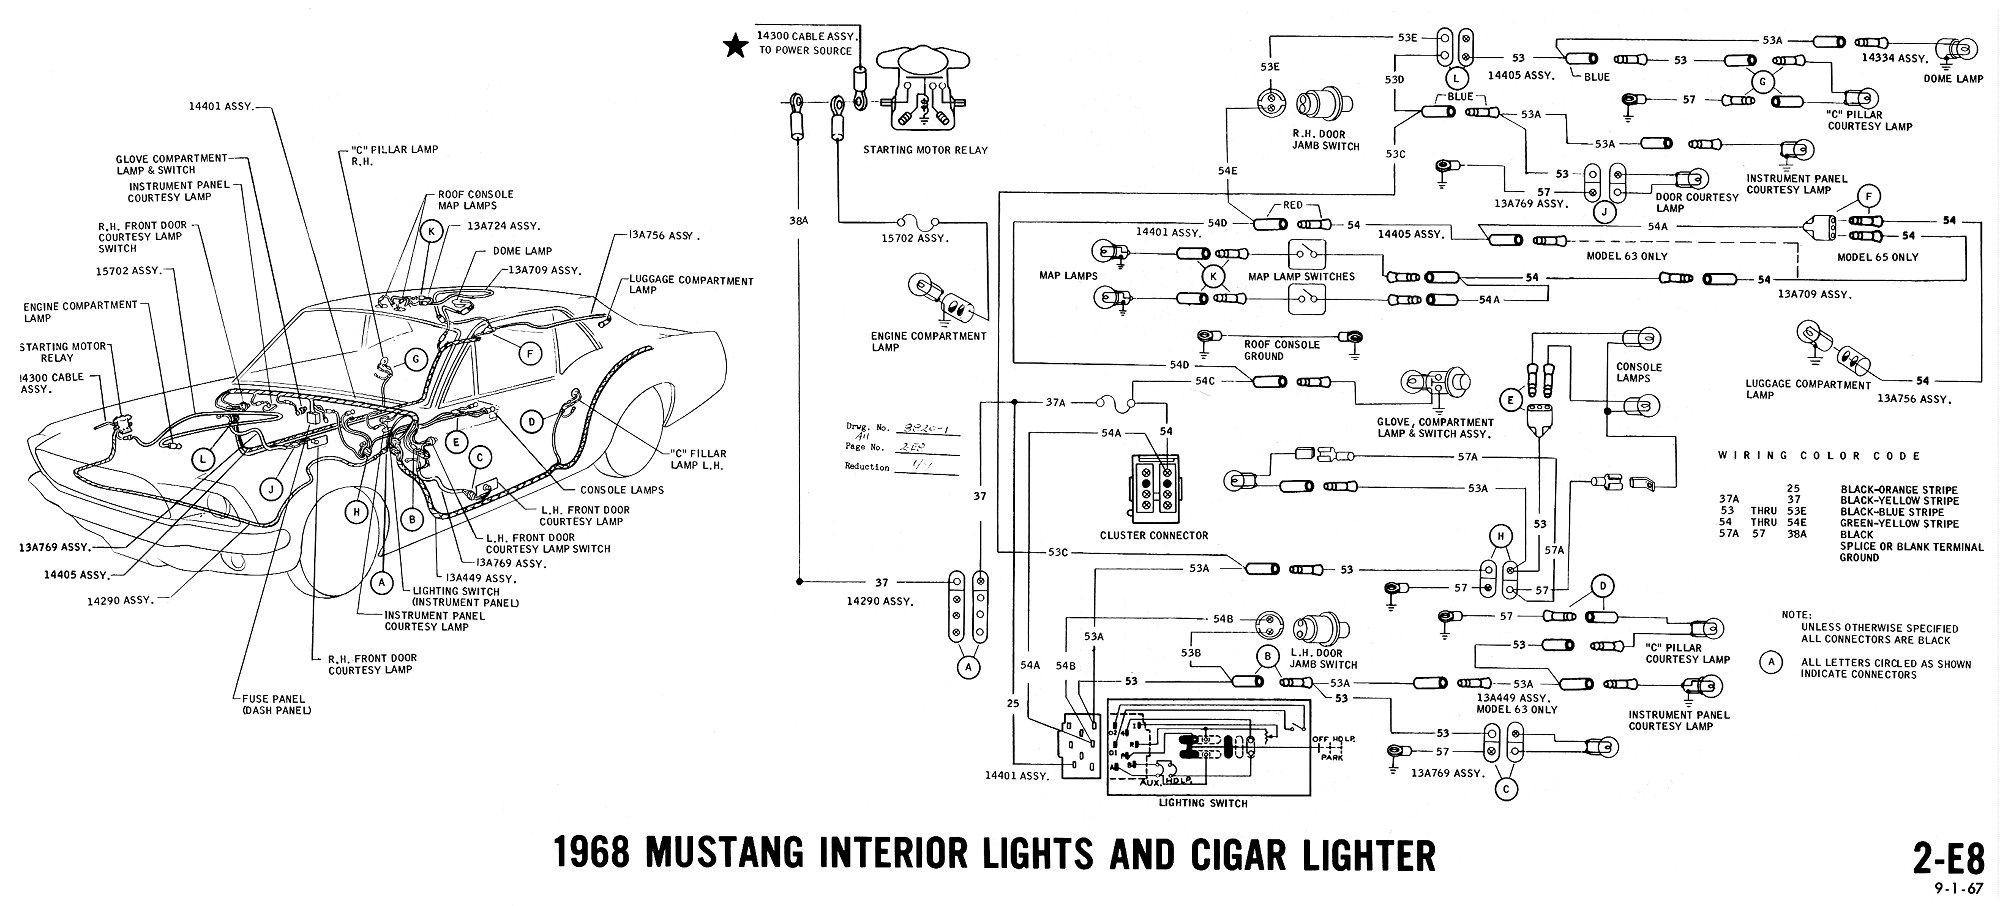 Wiring A Hydraulic Brake Switch 67 Mustang Light Schematic Diagram And Ebooks Cougar Harness Schema Diagrams Rh 71 Justanotherbeautyblog De 2002 Dimmer Combo